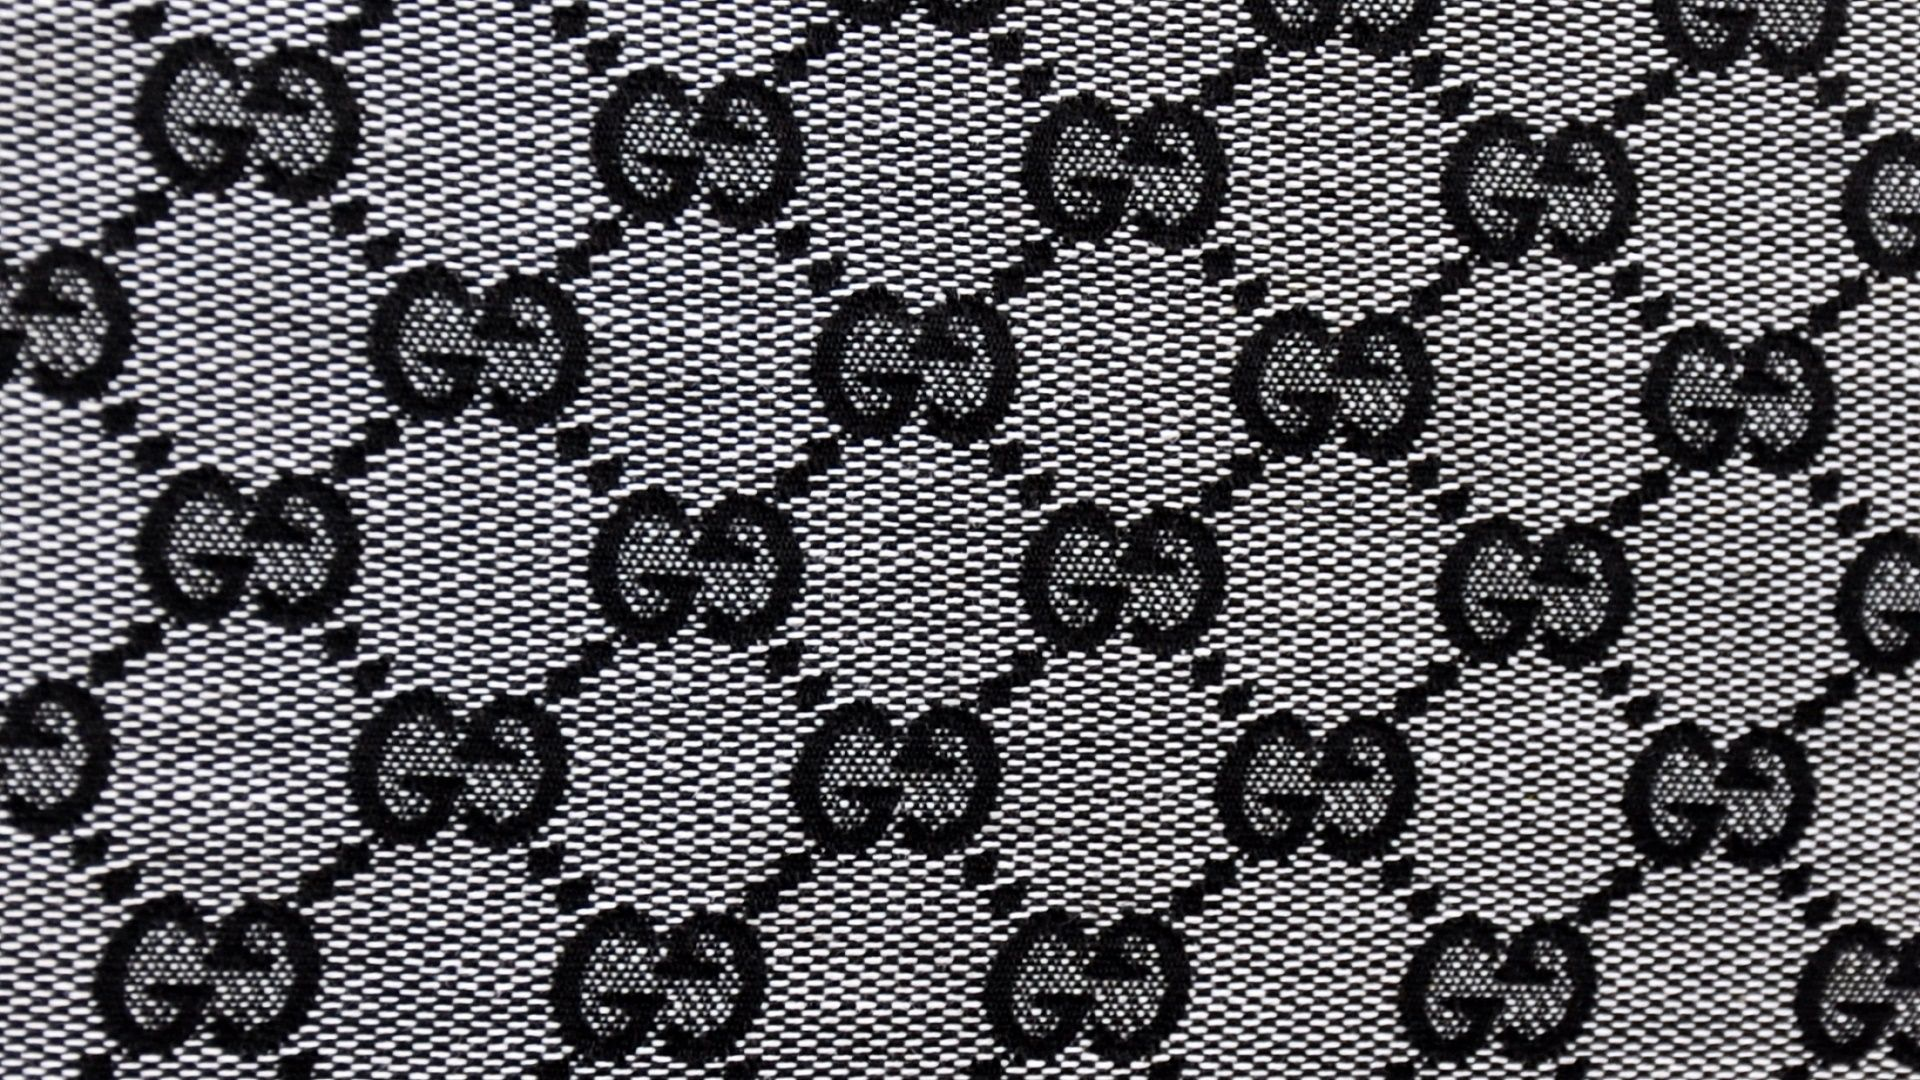 Gucci Wallpapers HD Fondo de pantalla chanel, Patrones